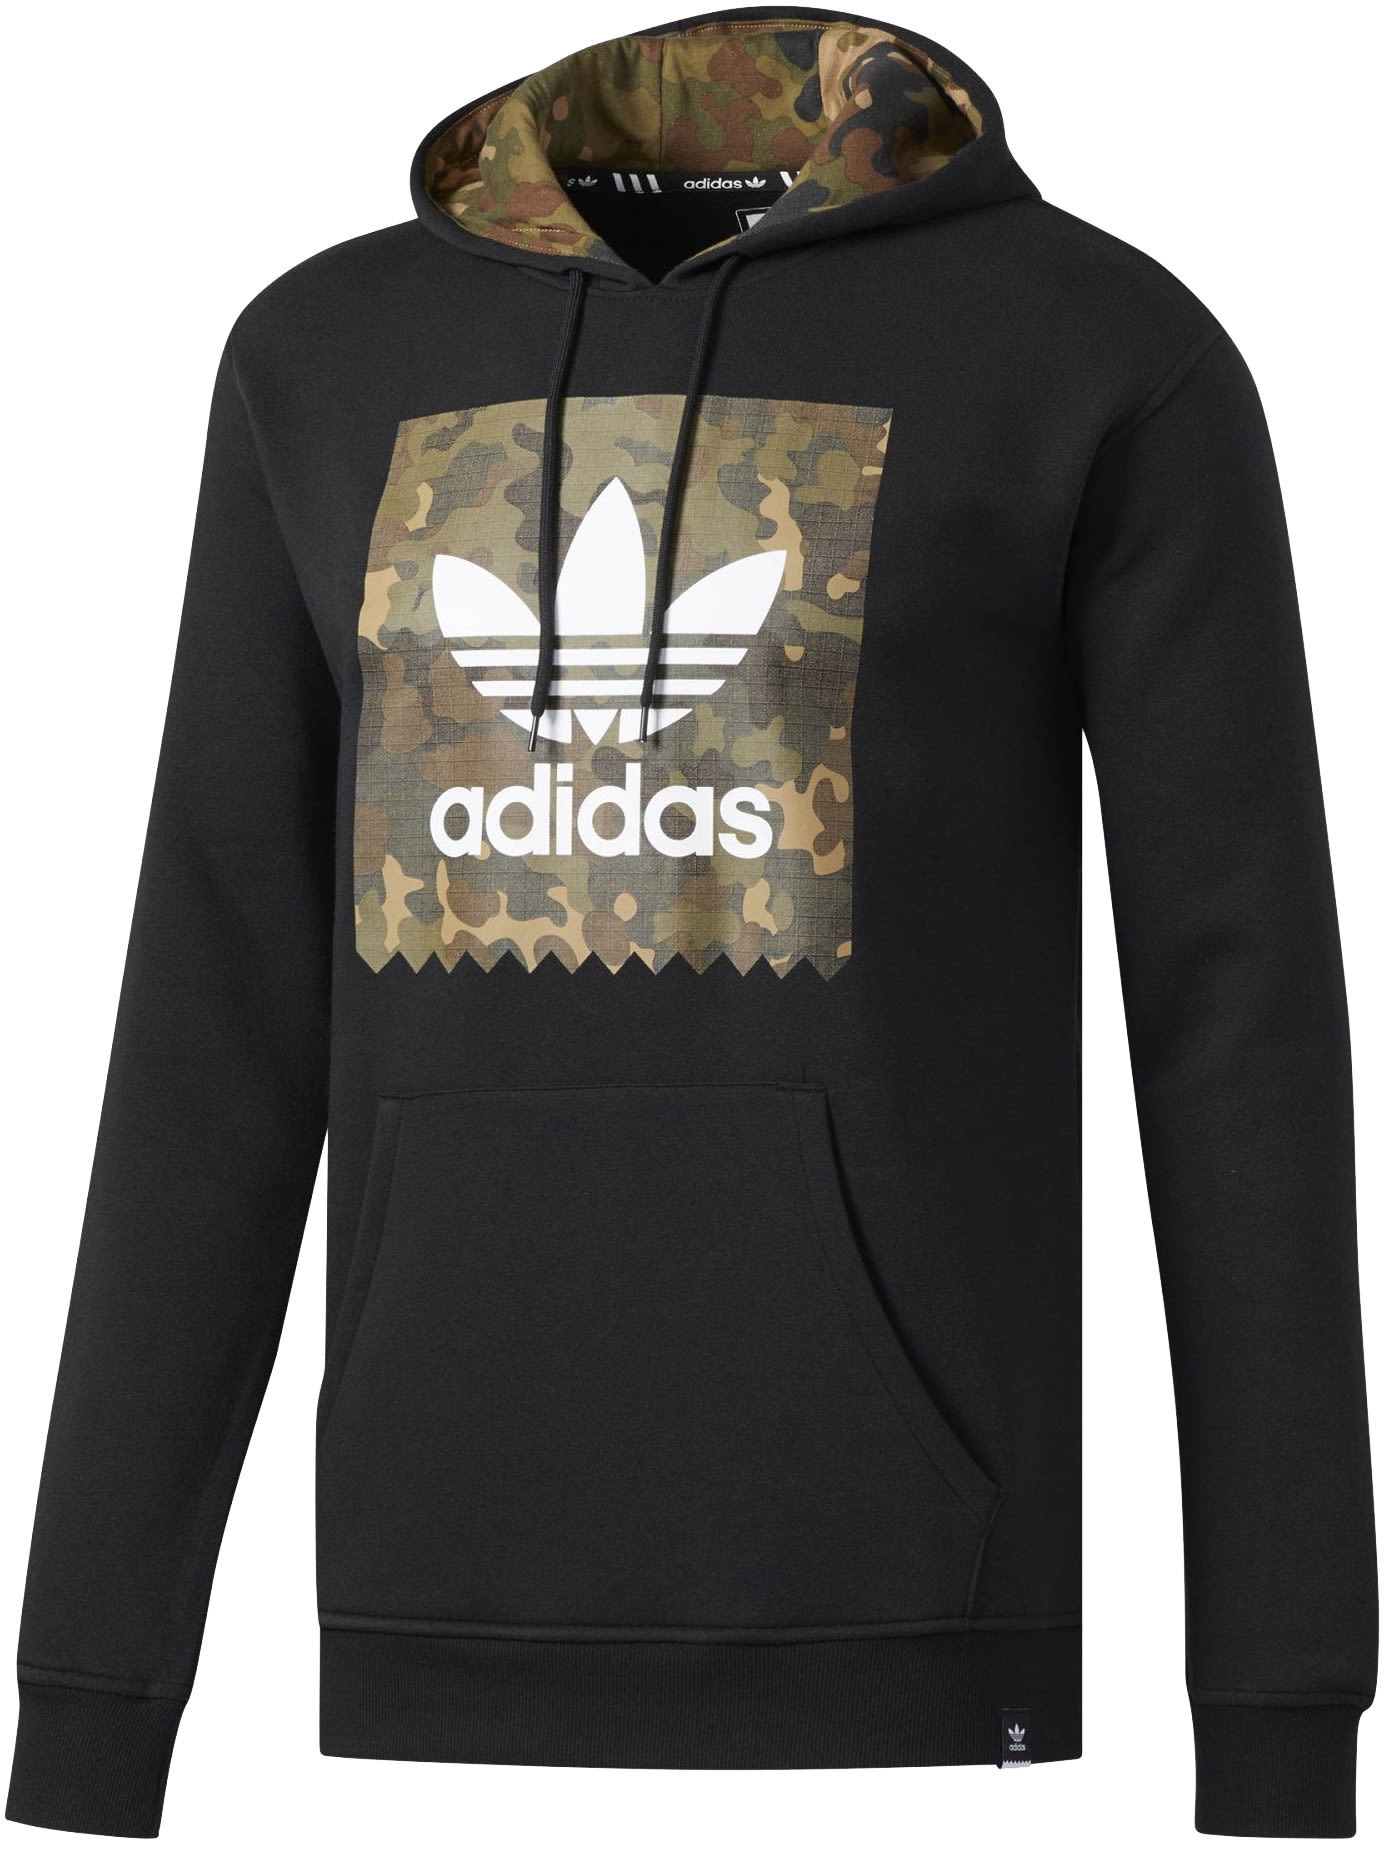 on sale adidas blackbird camo hoodie up to 40 off. Black Bedroom Furniture Sets. Home Design Ideas